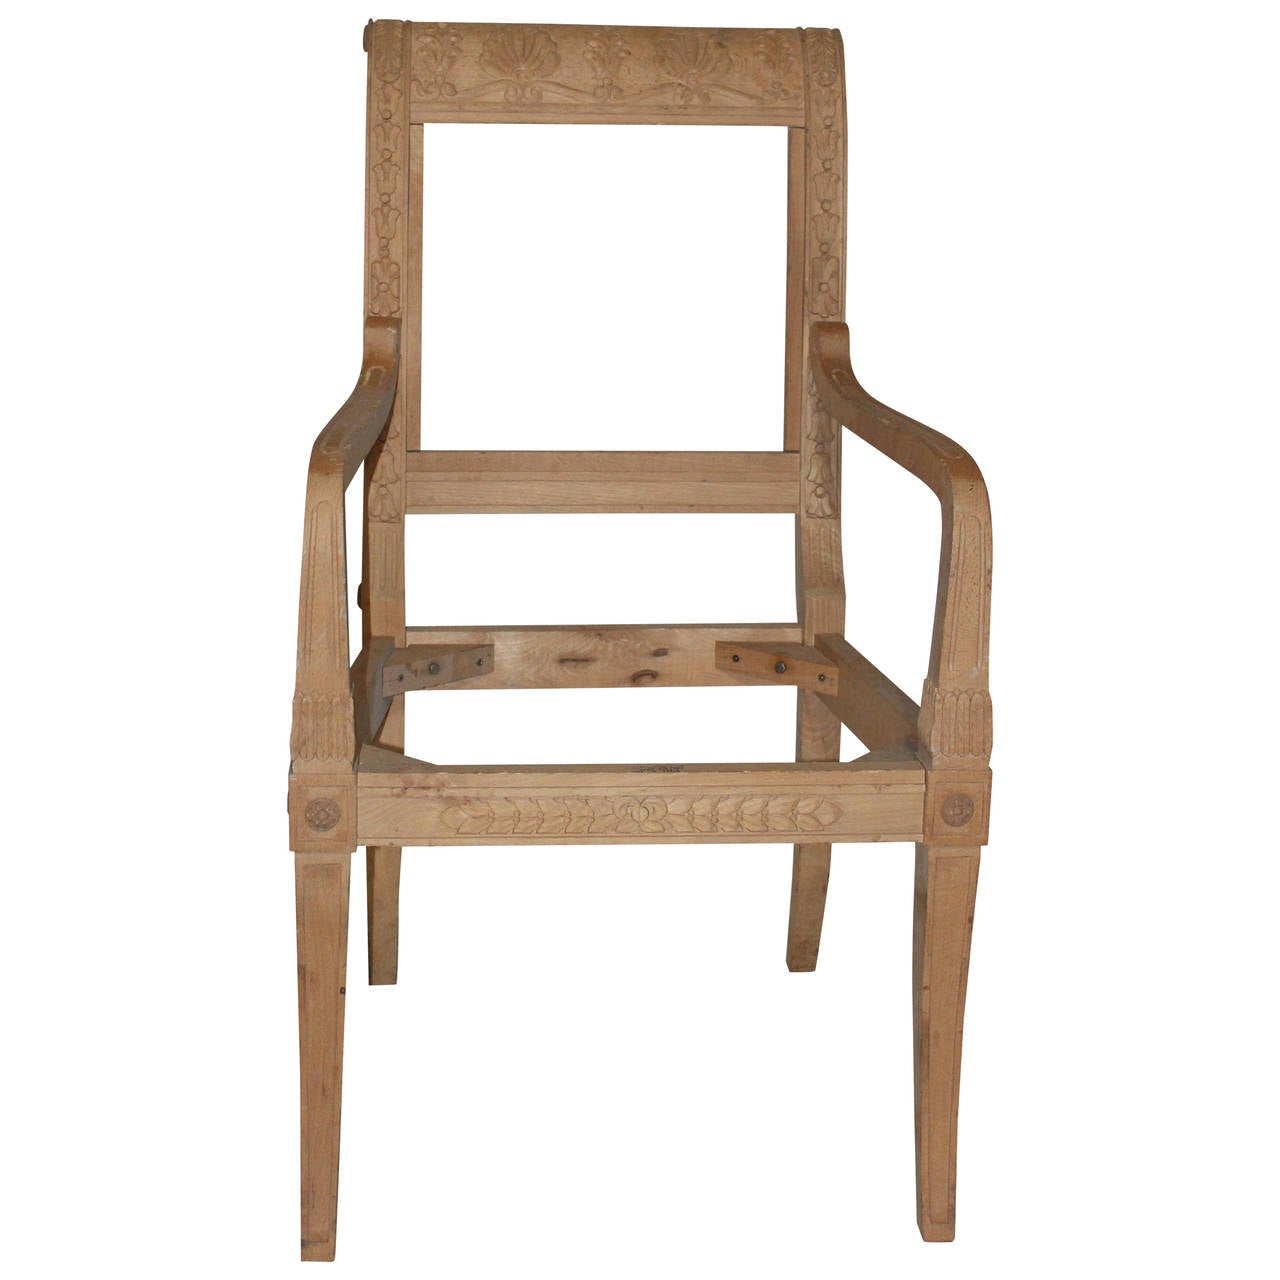 nicely carved and detailed dining chair frames from the david barrett